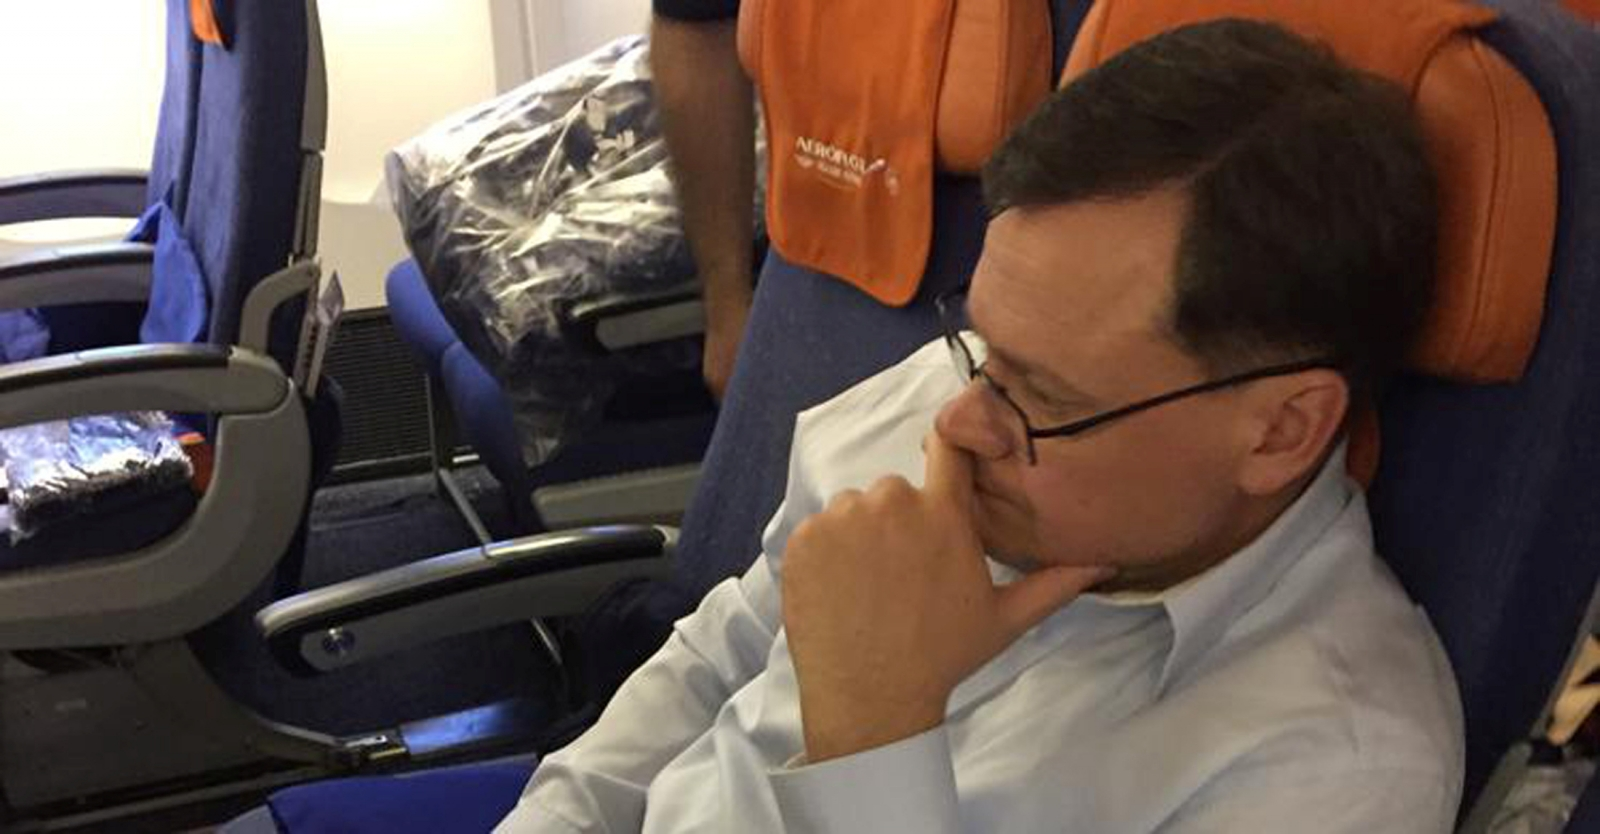 Evgeny Buryakov, a former New York banker who was convicted in federal court of conspiring to act in the United States as an agent of the Russian Federation, is shown in this handout photo sitting on a commercial flight, escorted by deportation officers a